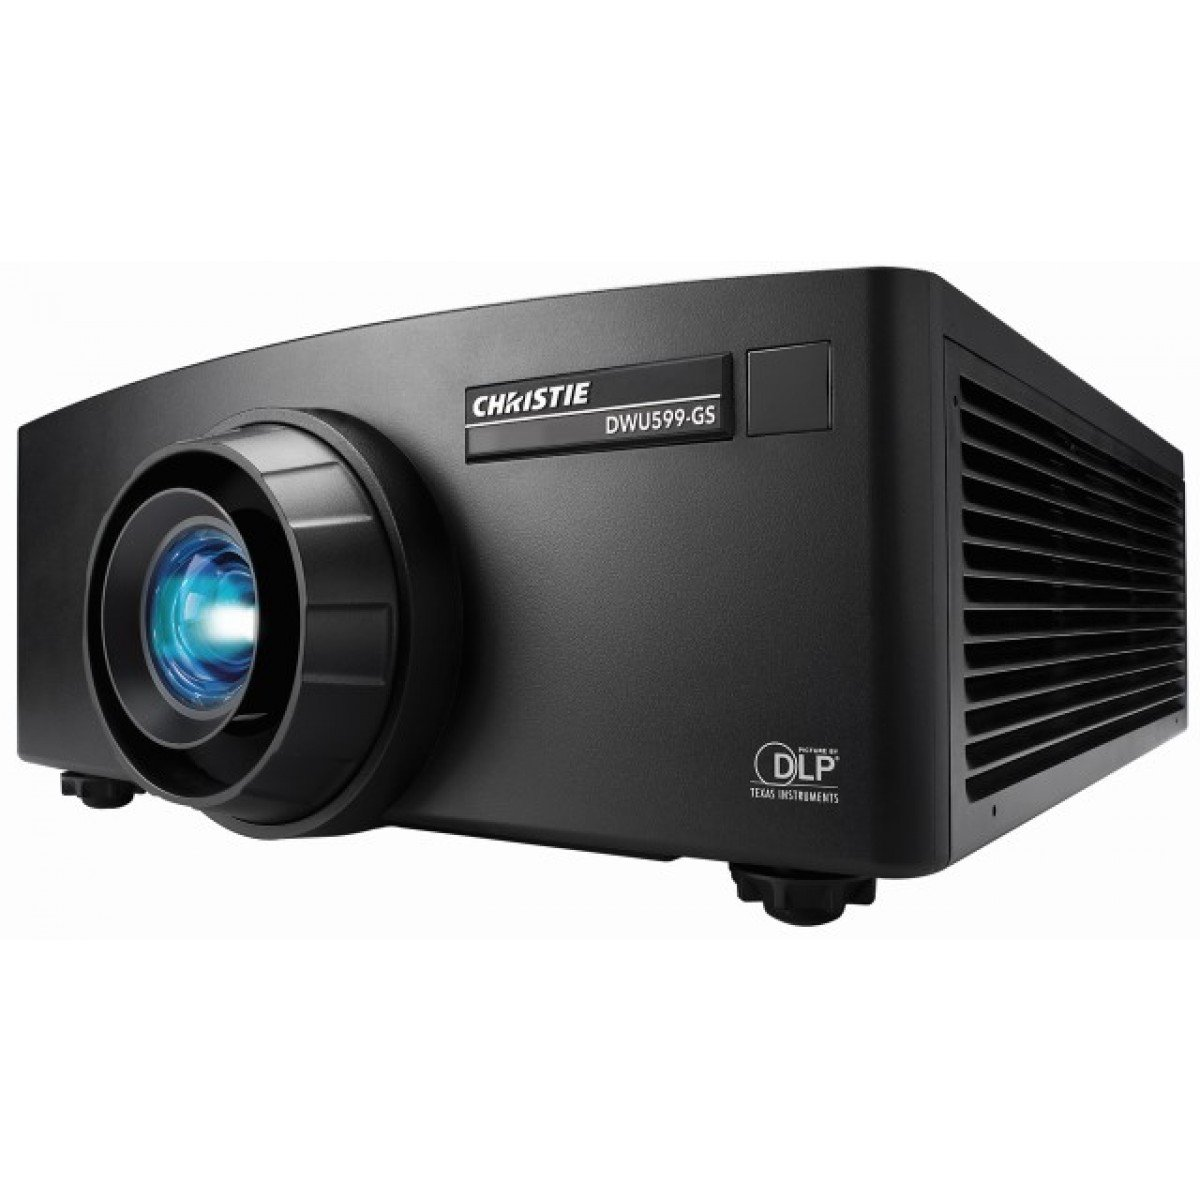 christie-dwu599-gs-black-with-zoom-lens-122-153-25-hrs